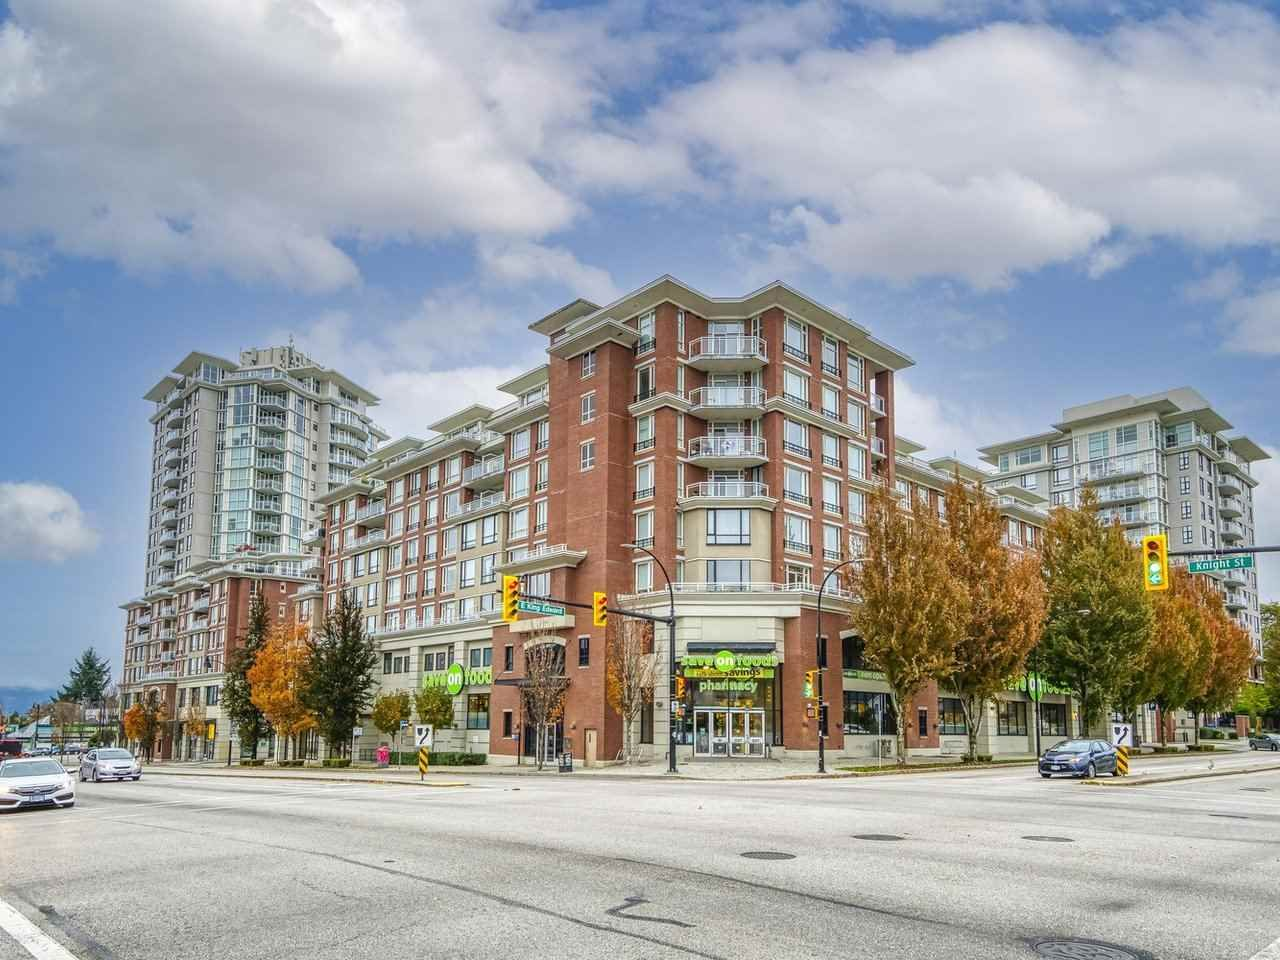 """Main Photo: 526 4078 KNIGHT Street in Vancouver: Knight Condo for sale in """"EDGE"""" (Vancouver East)  : MLS®# R2512910"""